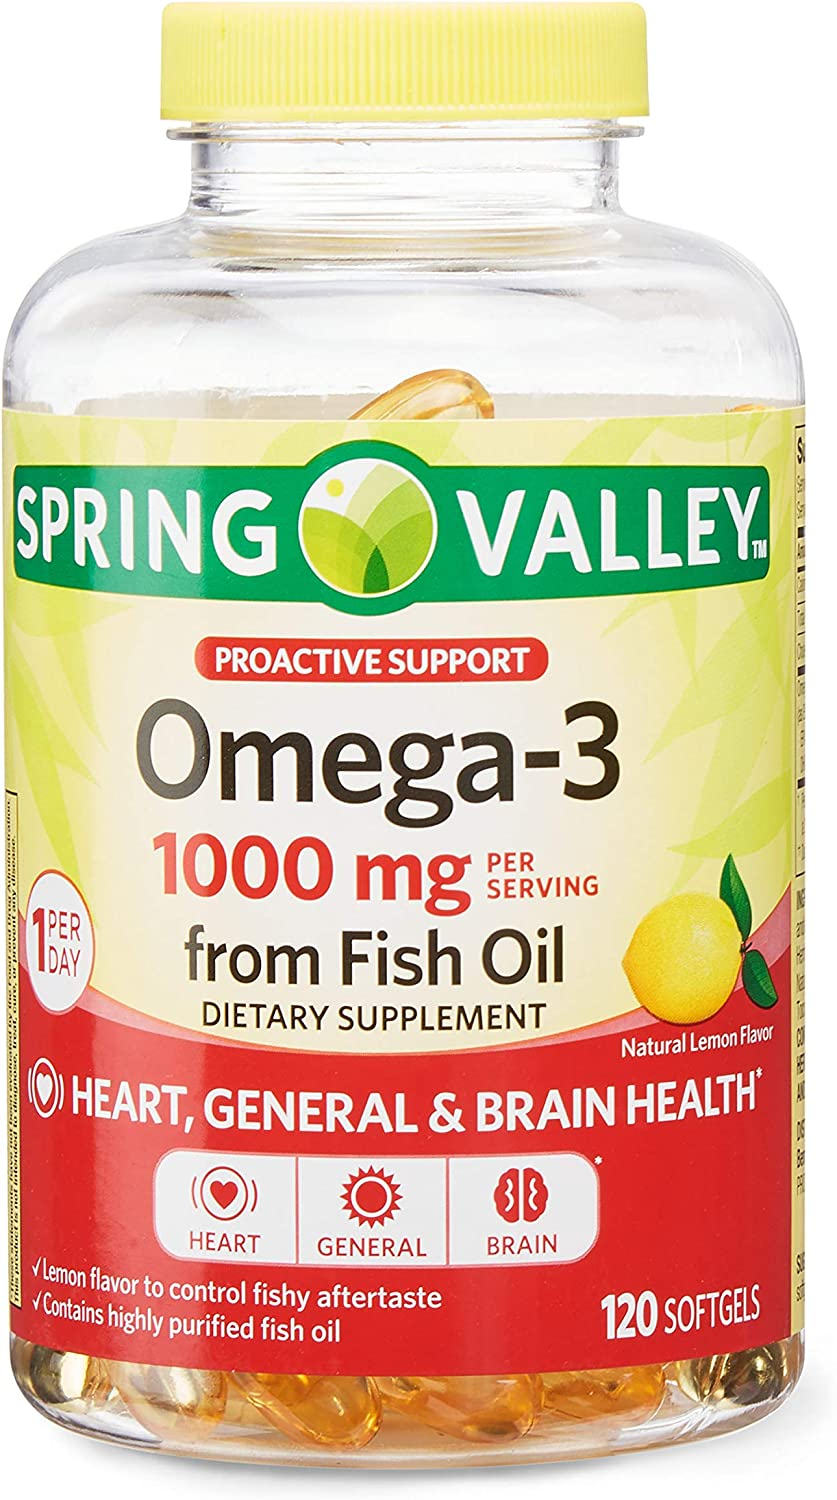 Spring Valley Omega-3 1000mg from Fish Oil Dietary Supplement, 120 Softgels